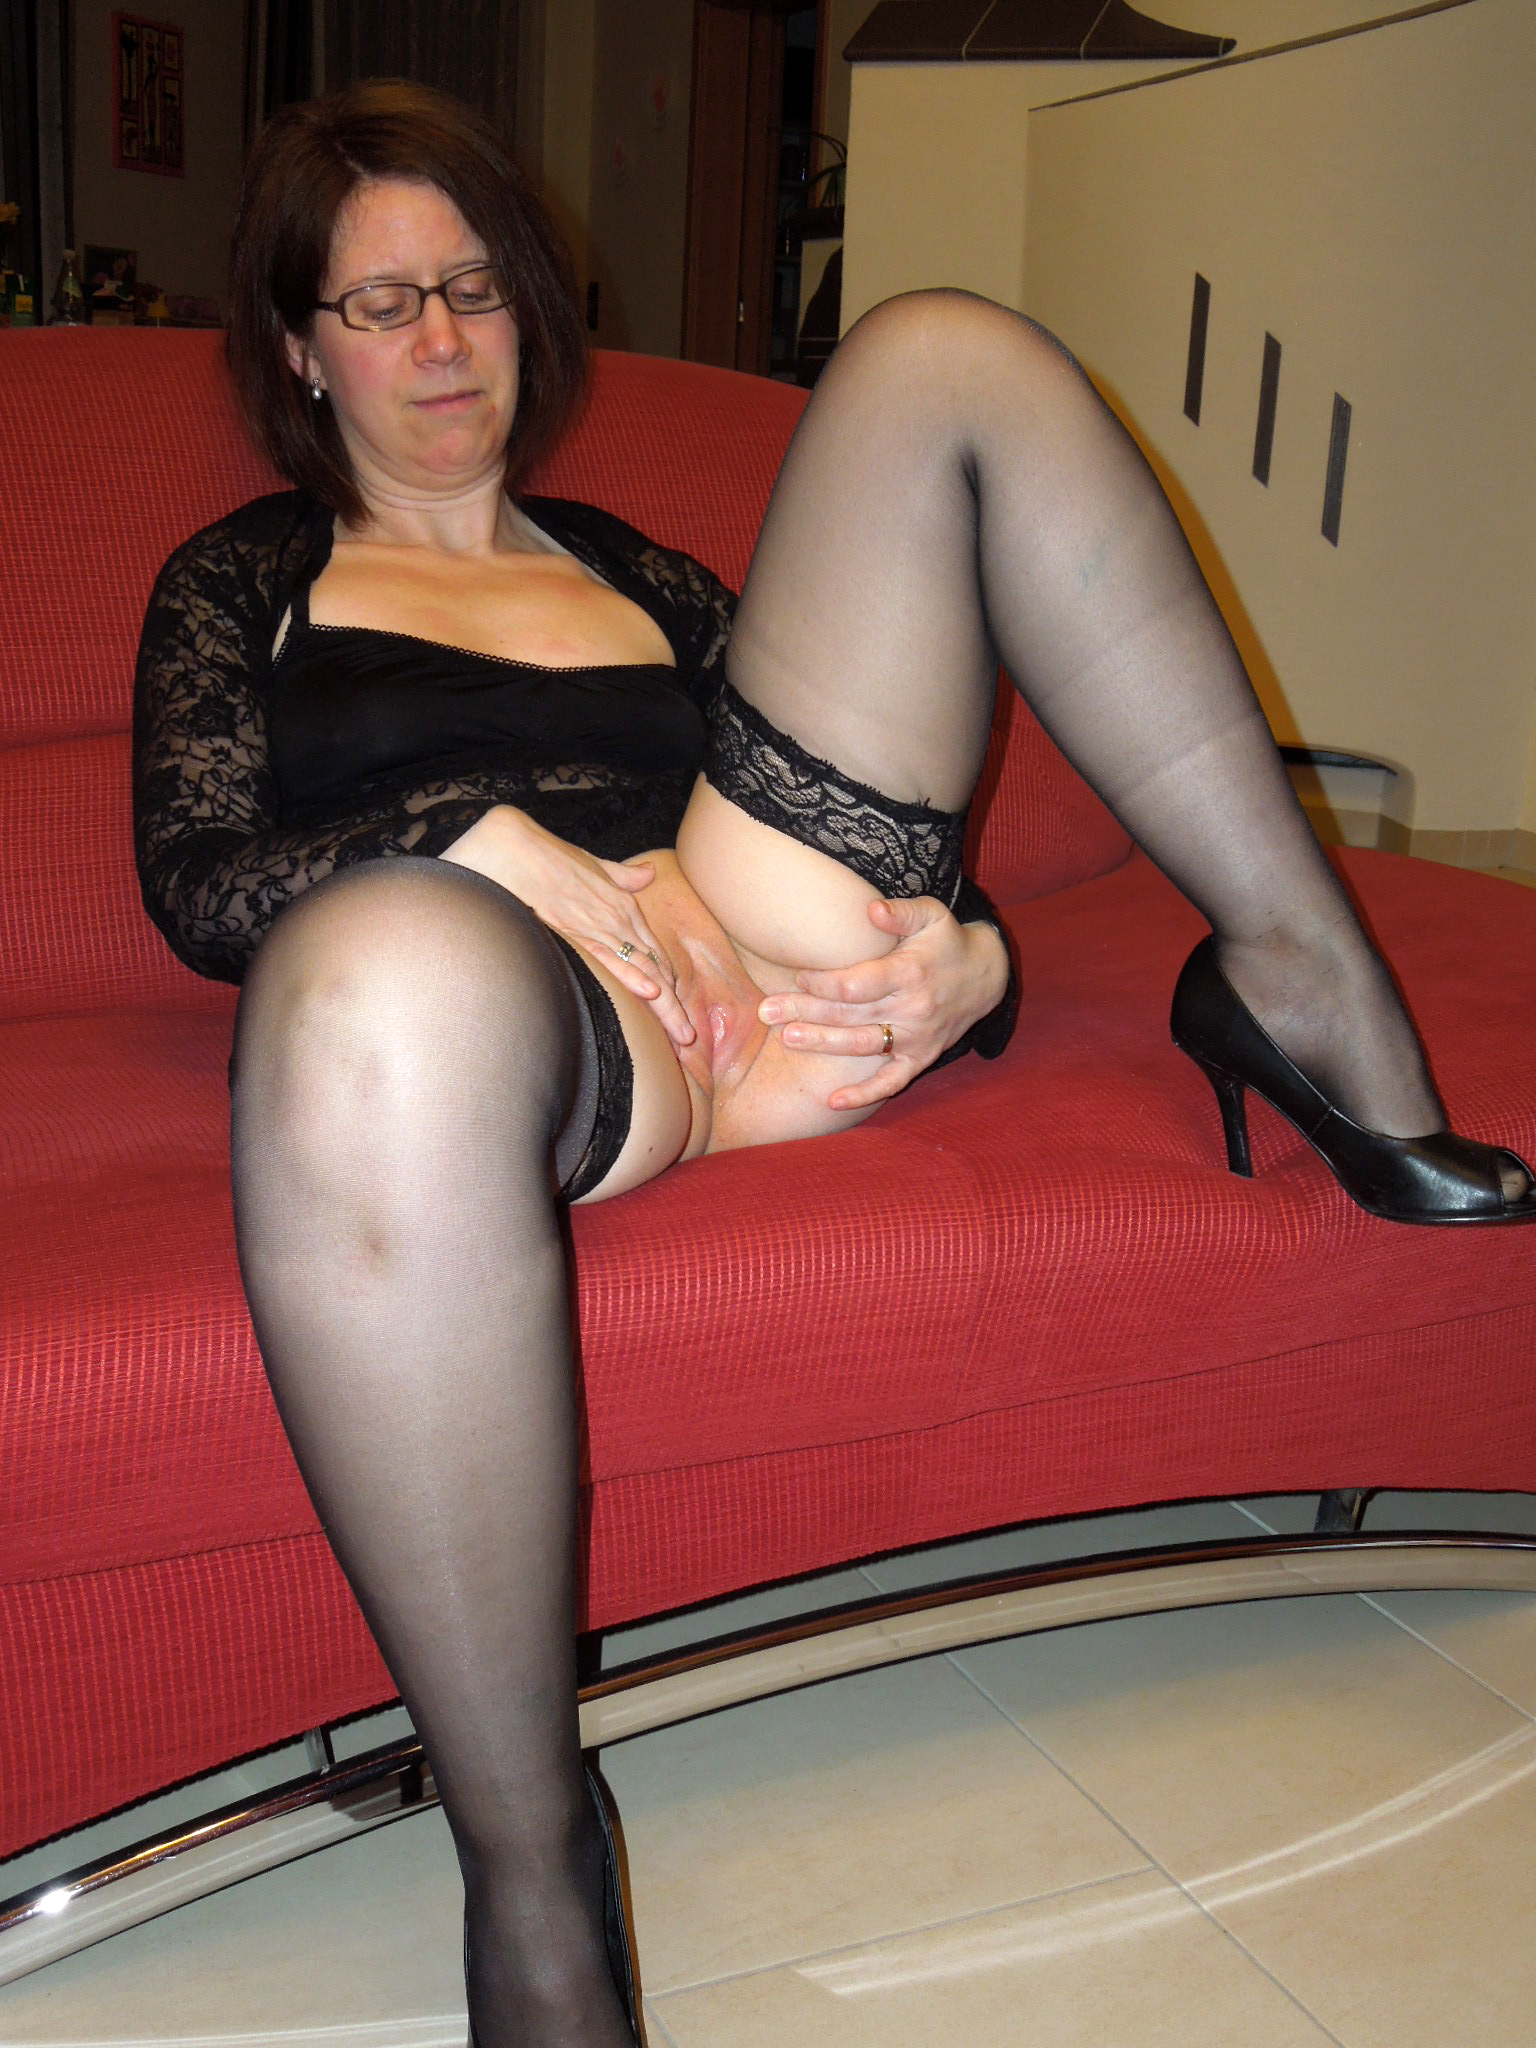 That interrupt milf mature strocking think